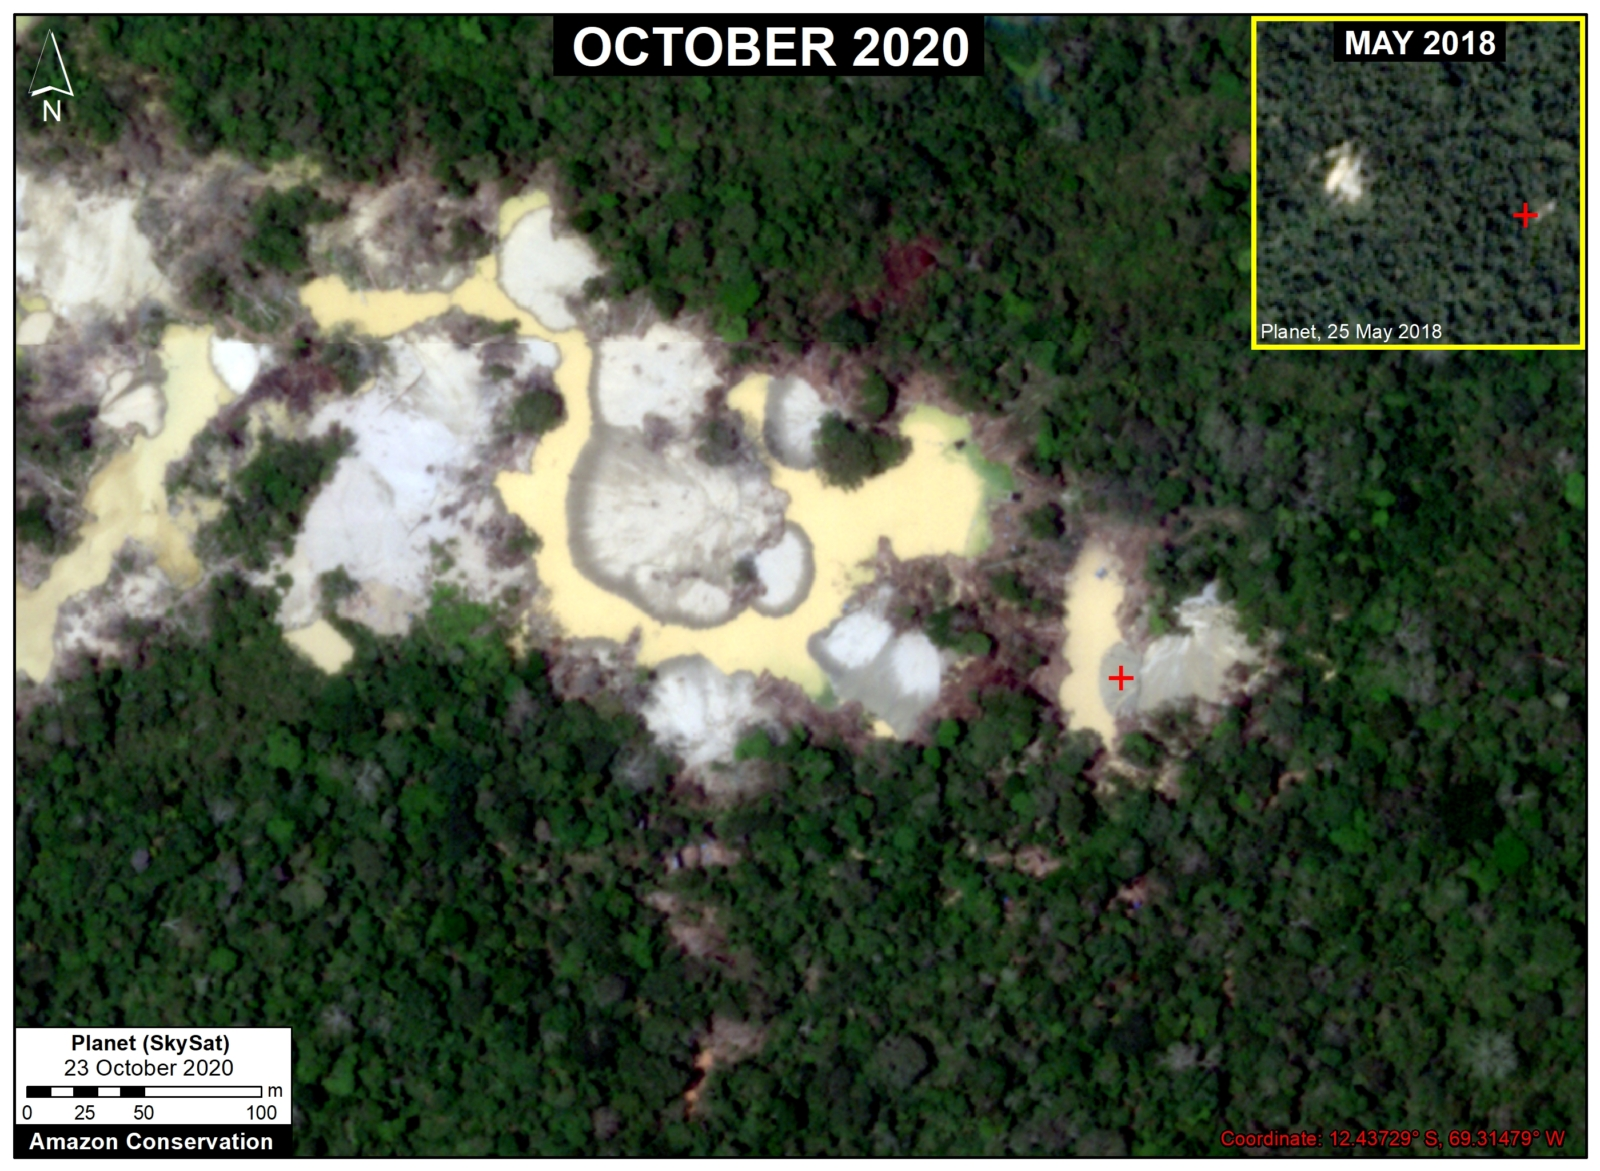 Expansion of new gold mining areas into the primary rainforests near the Pariamanu River (Madre de Dios region). © 2020, Planet Labs Inc. All Rights Reserved.